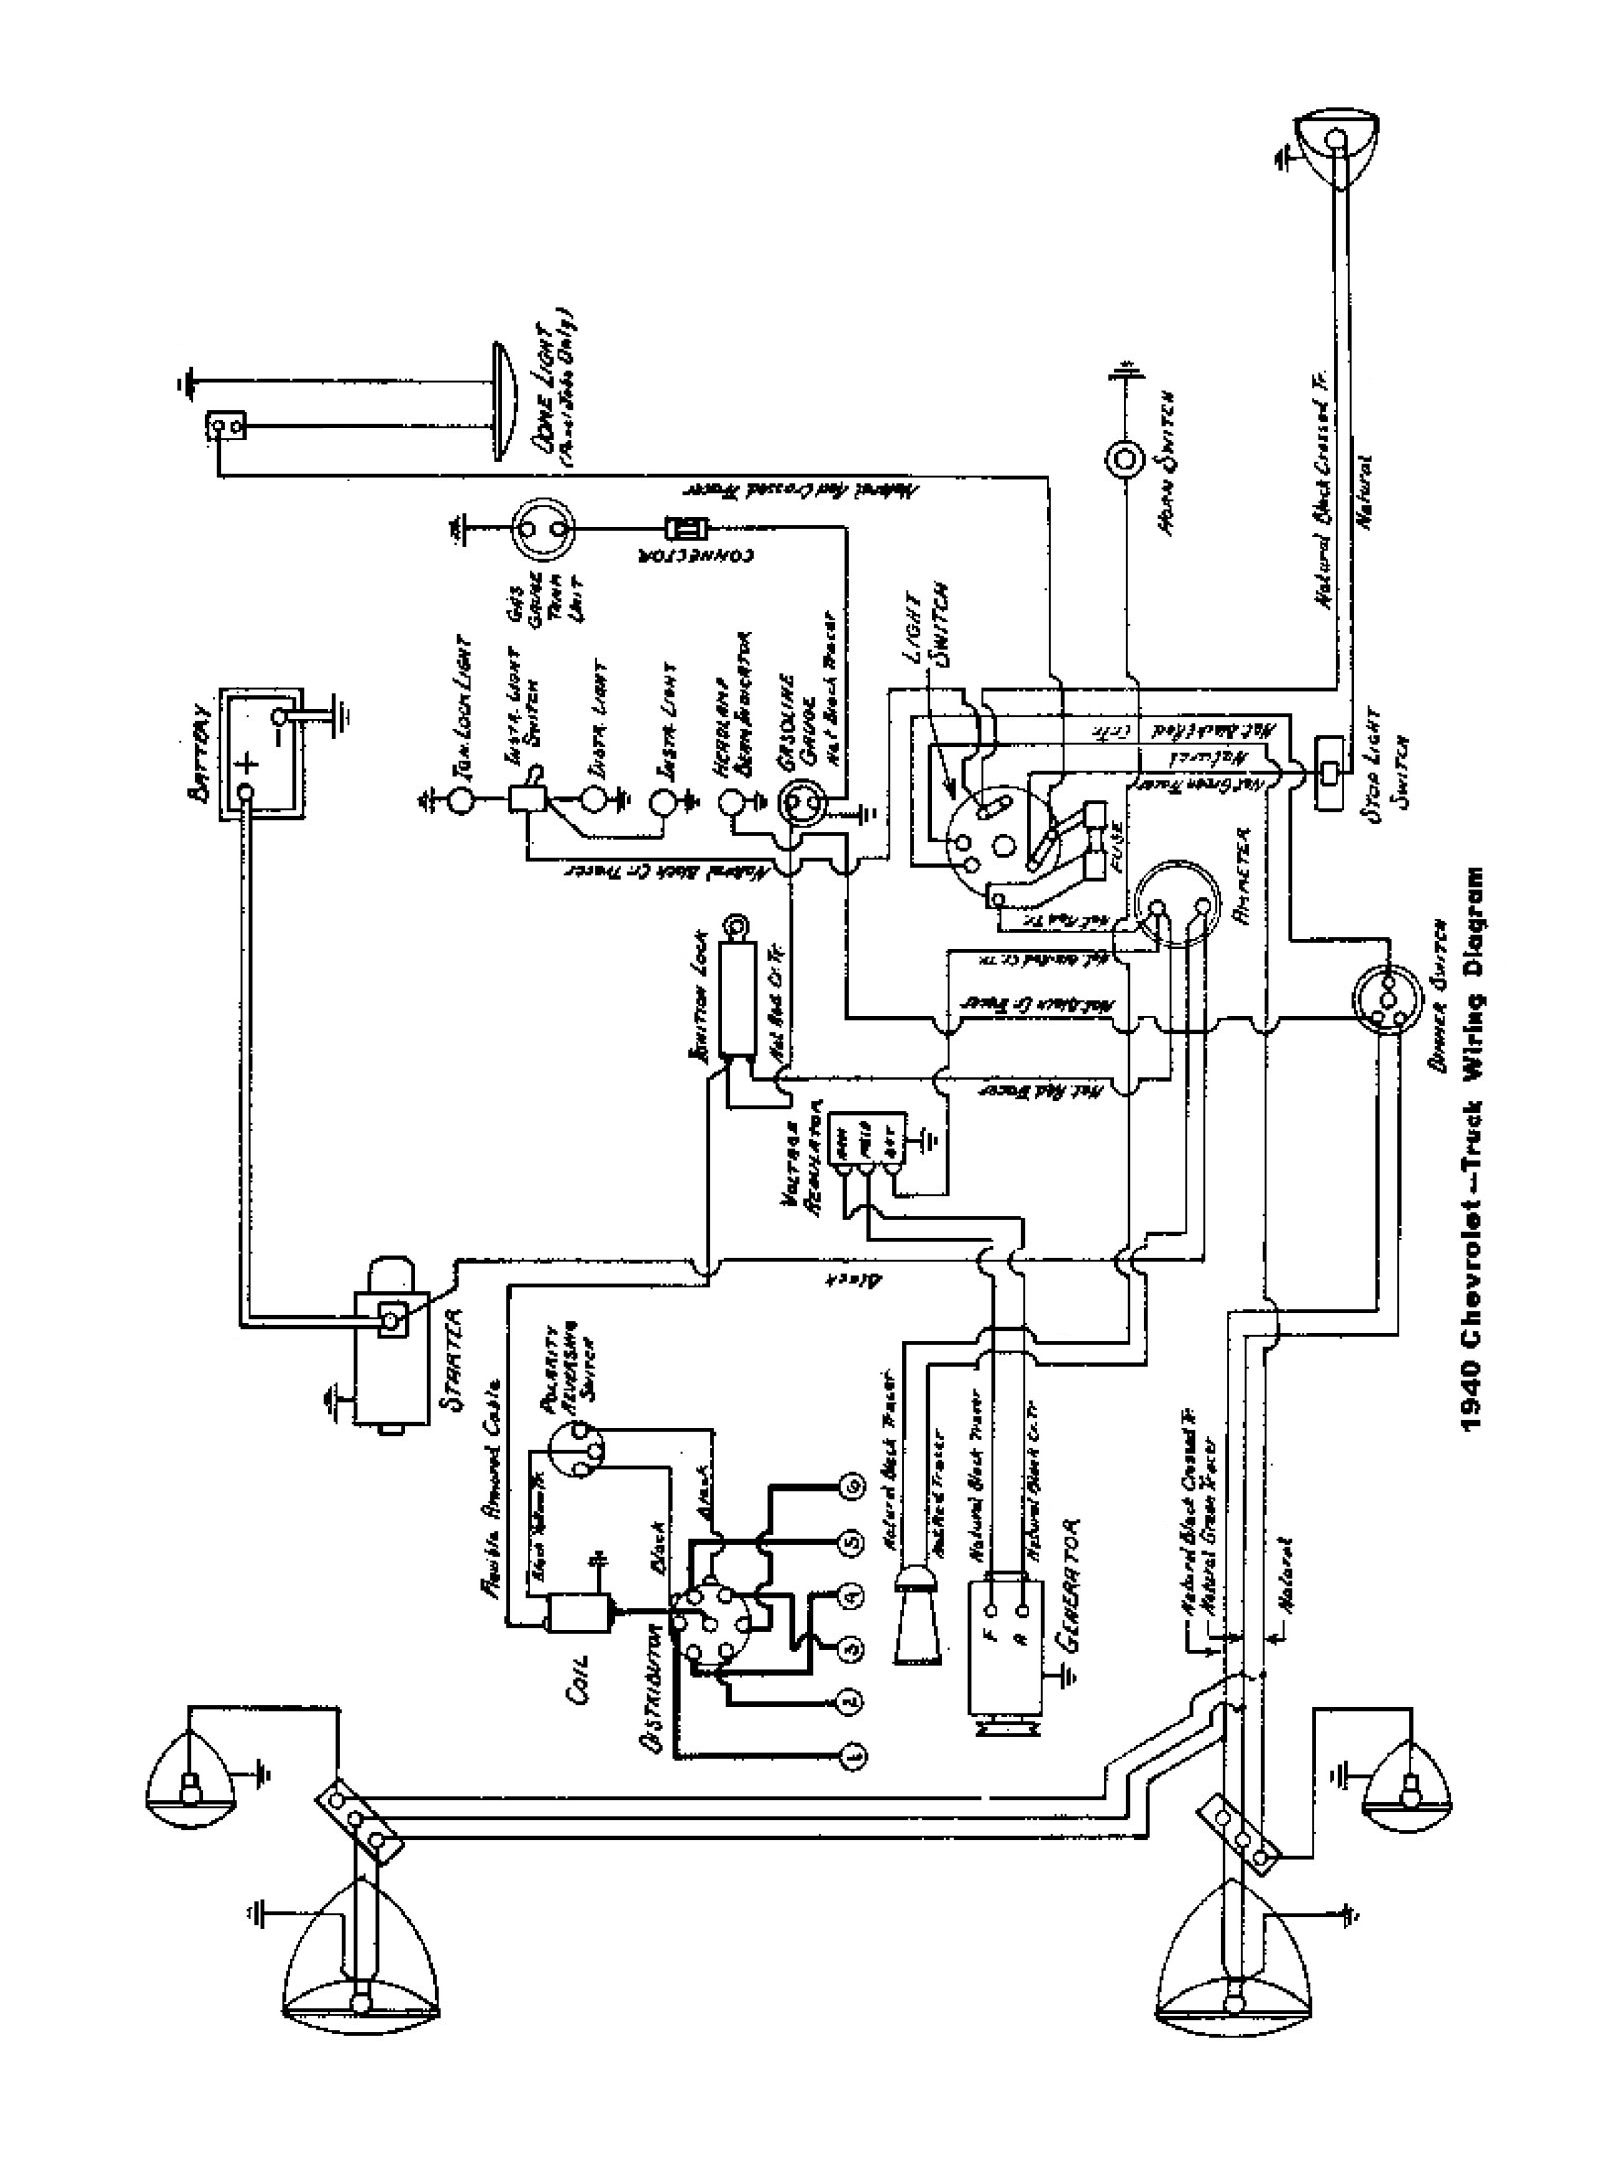 1957 Chevy Fuel Gauge Wiring Diagram - wiring diagrams